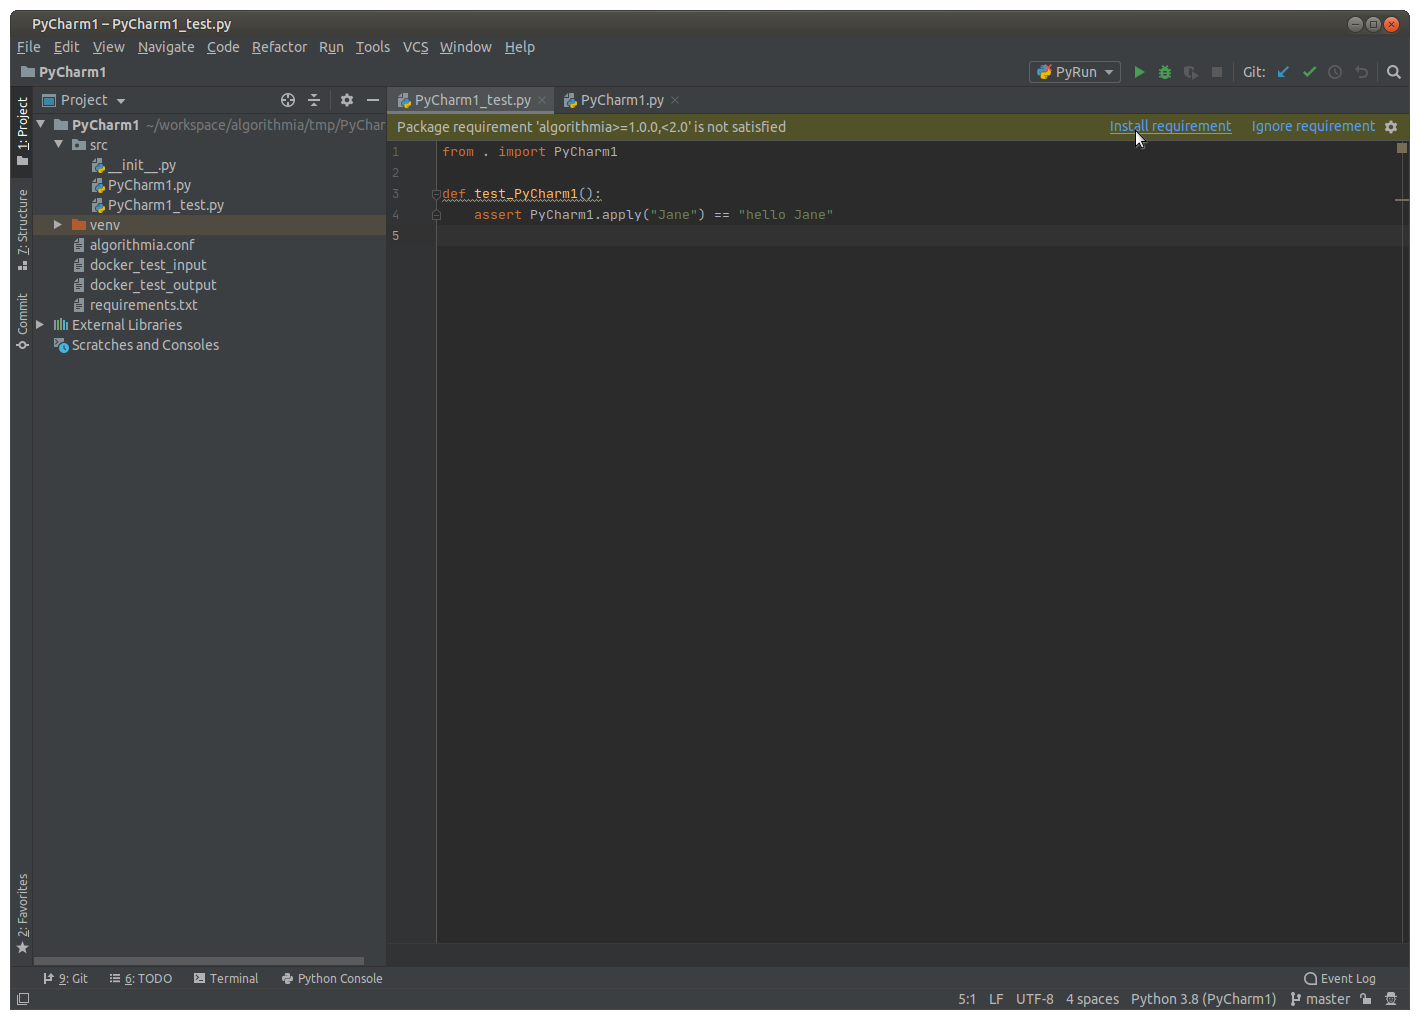 PyCharm - Package requirement not satisfied